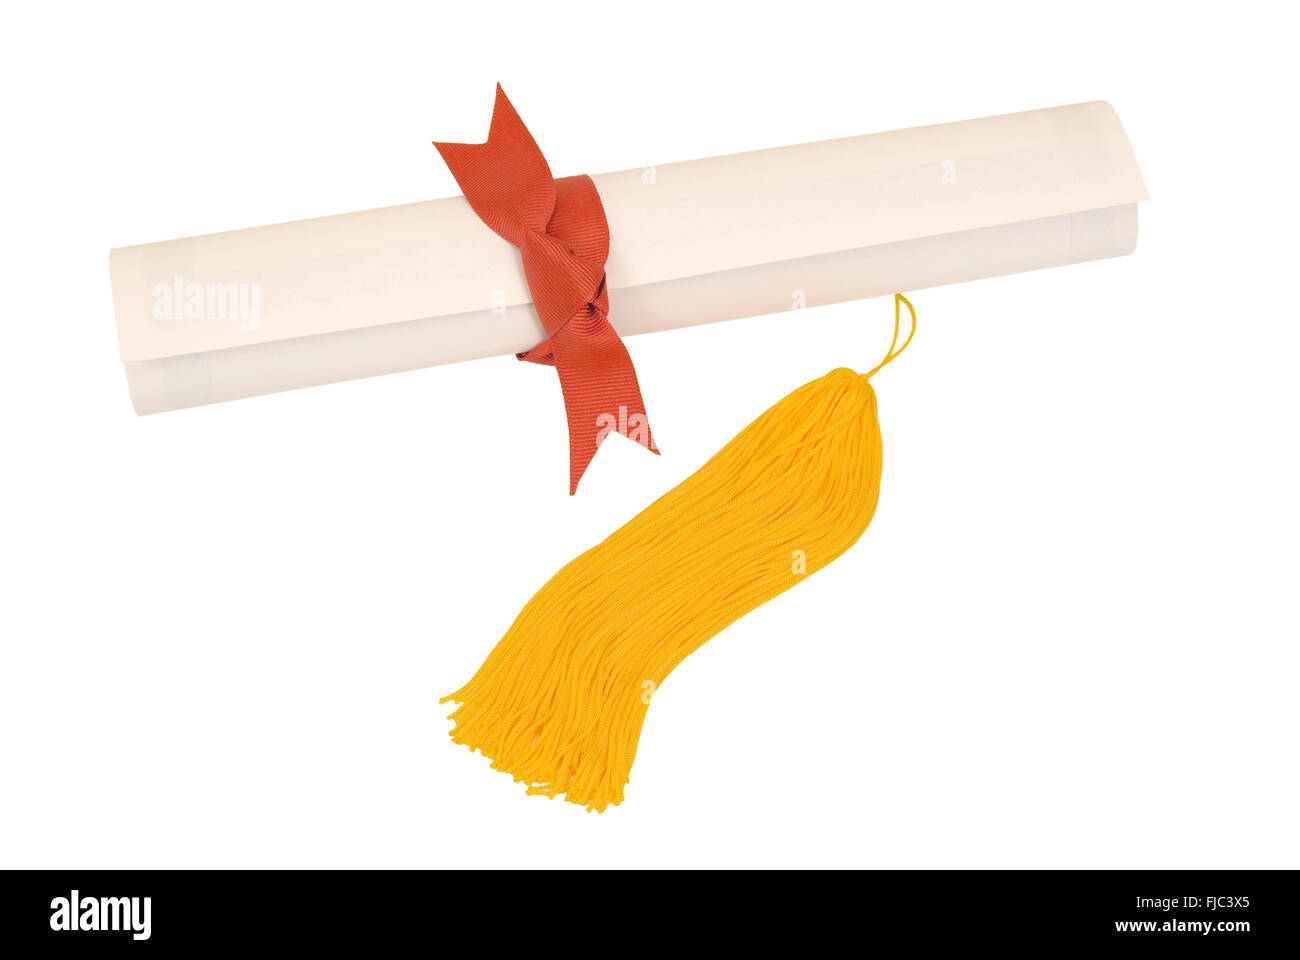 Diploma With Gold Tassel and Red Ribbon - Stock Image